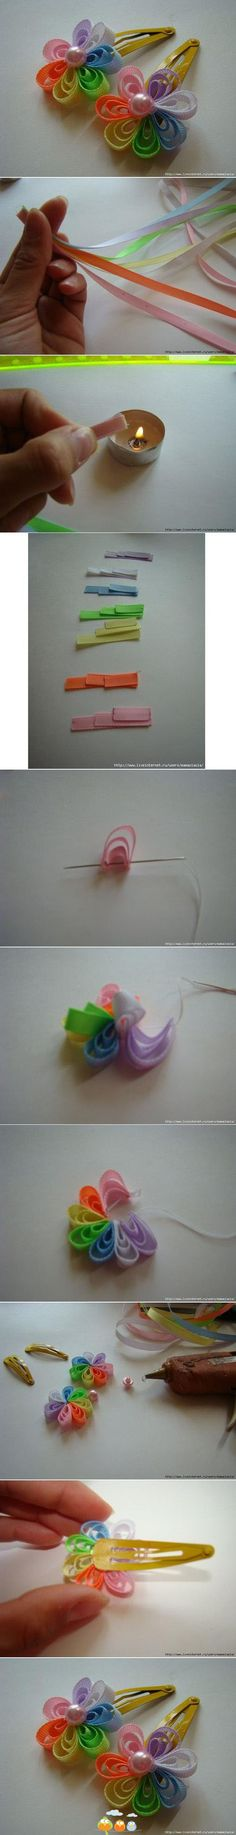 pinza quilling